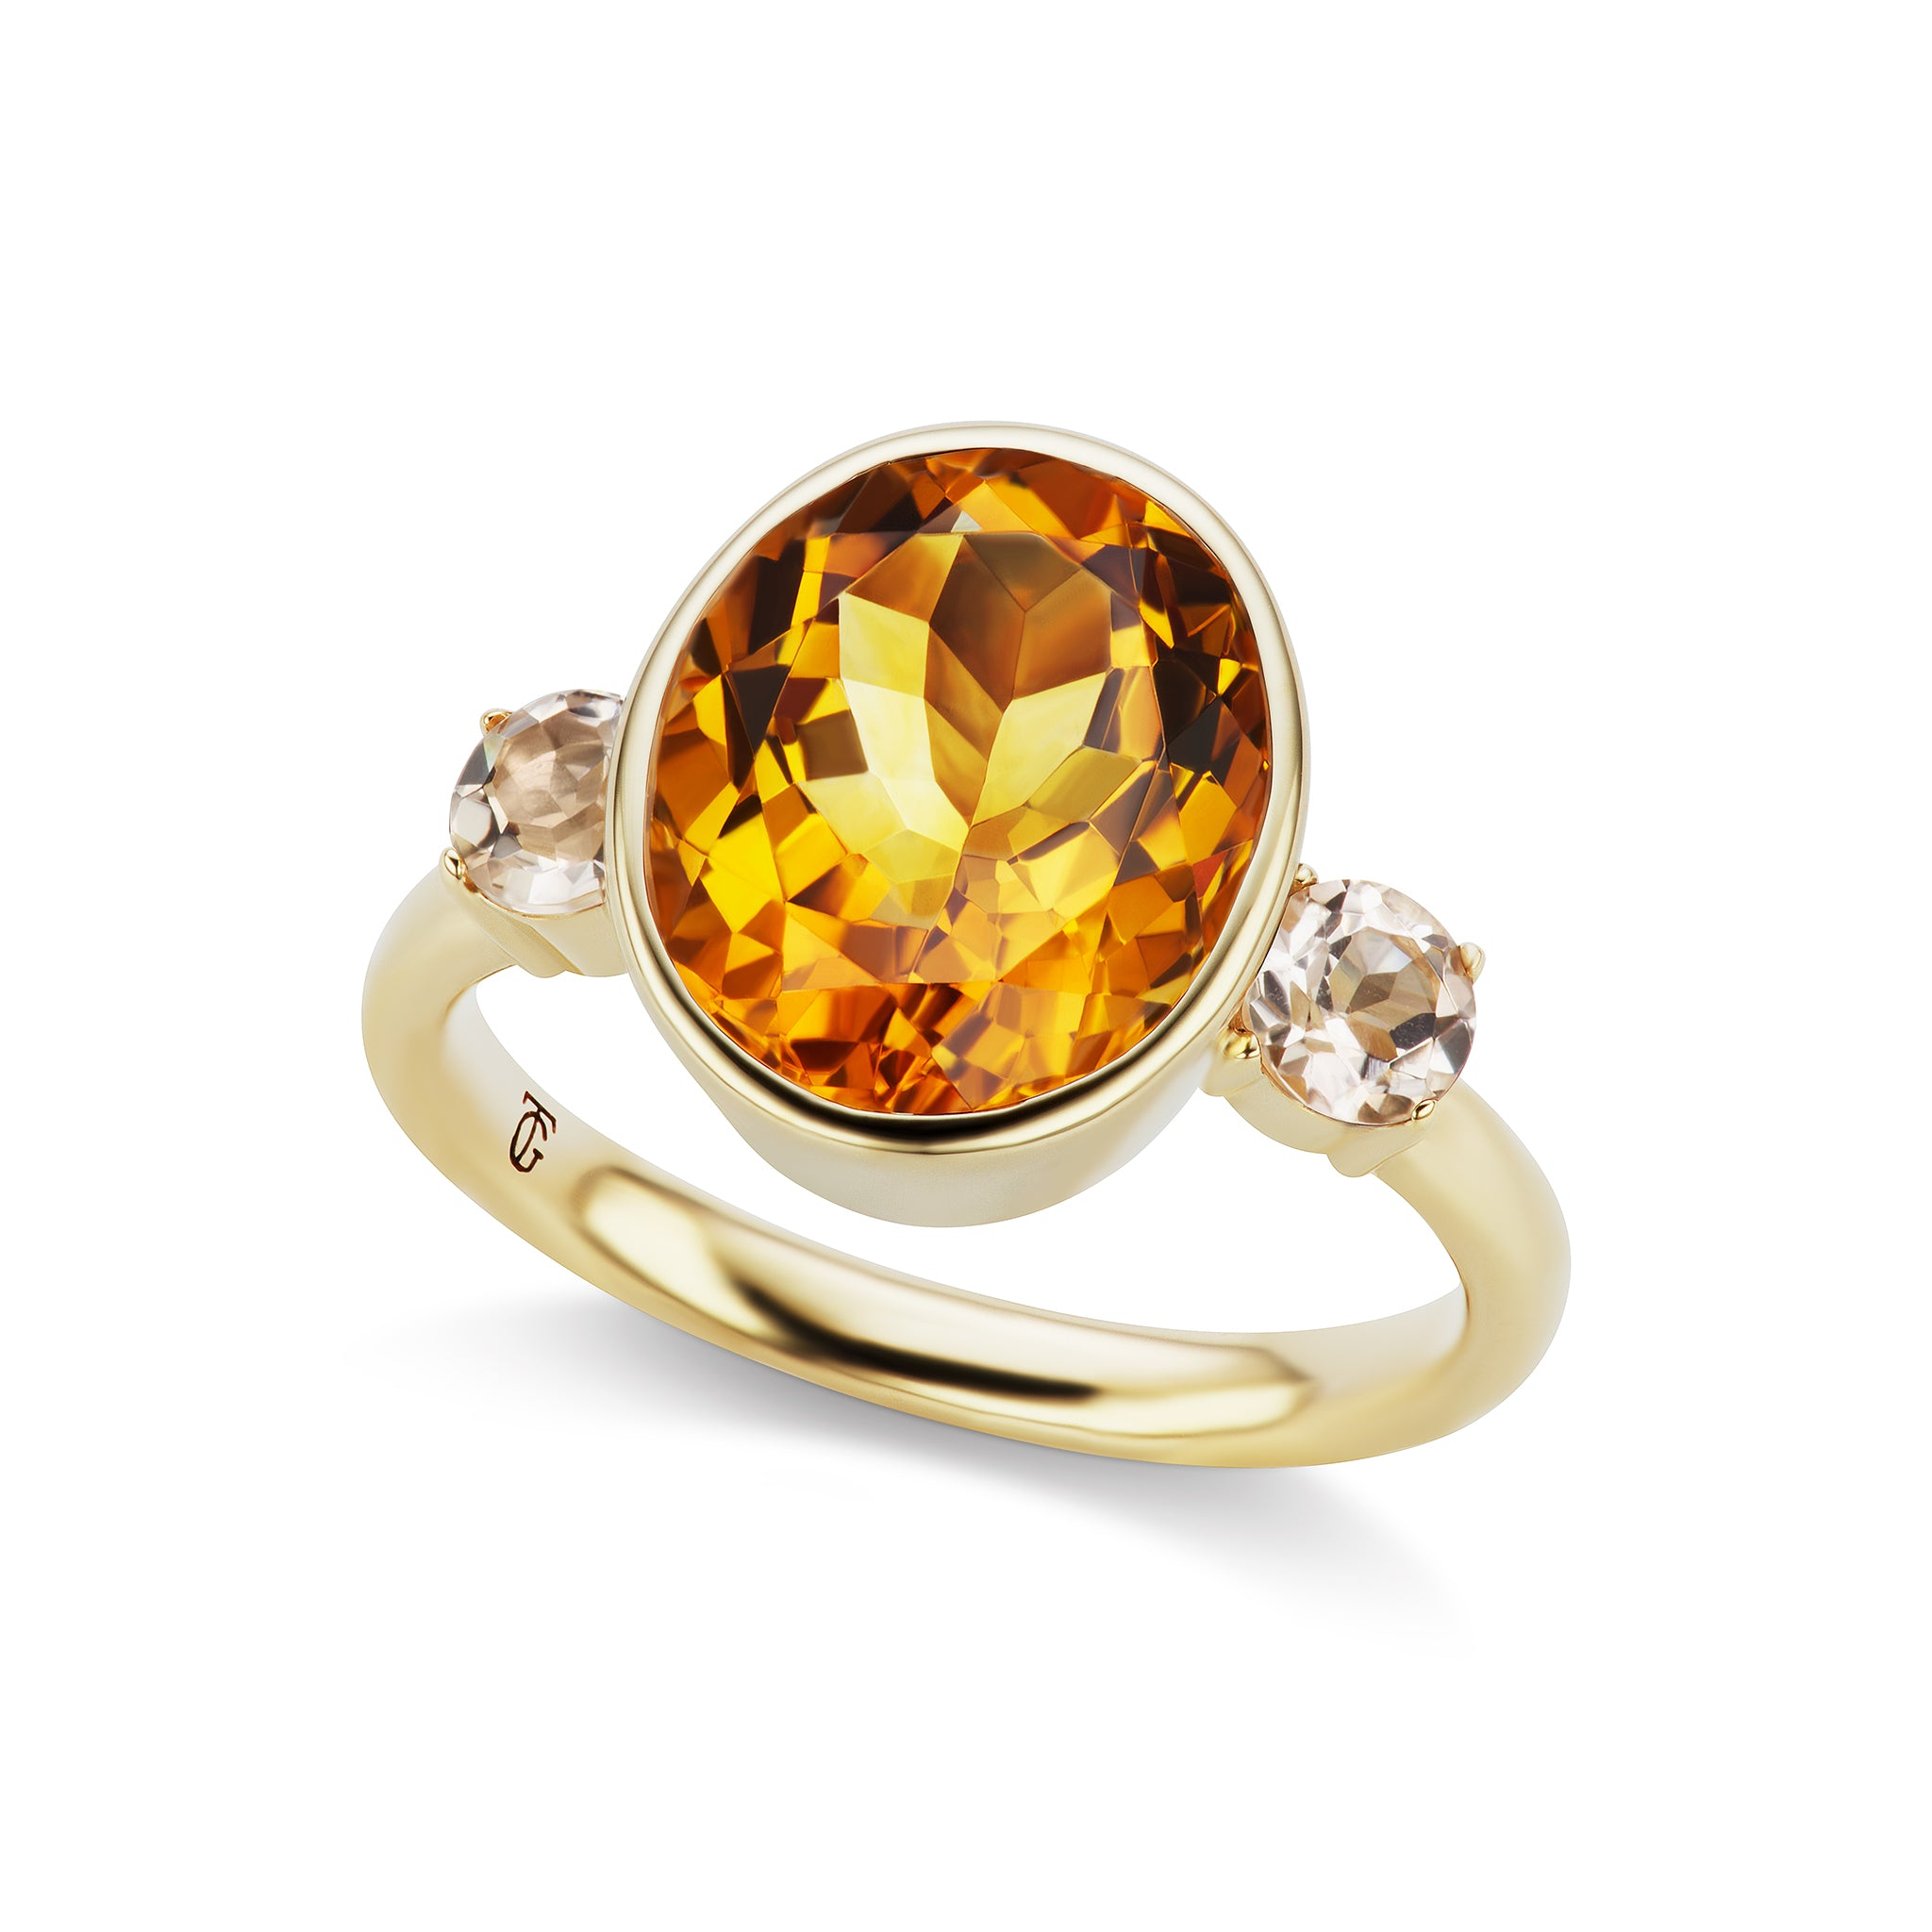 The Citrine Lindsay Ring